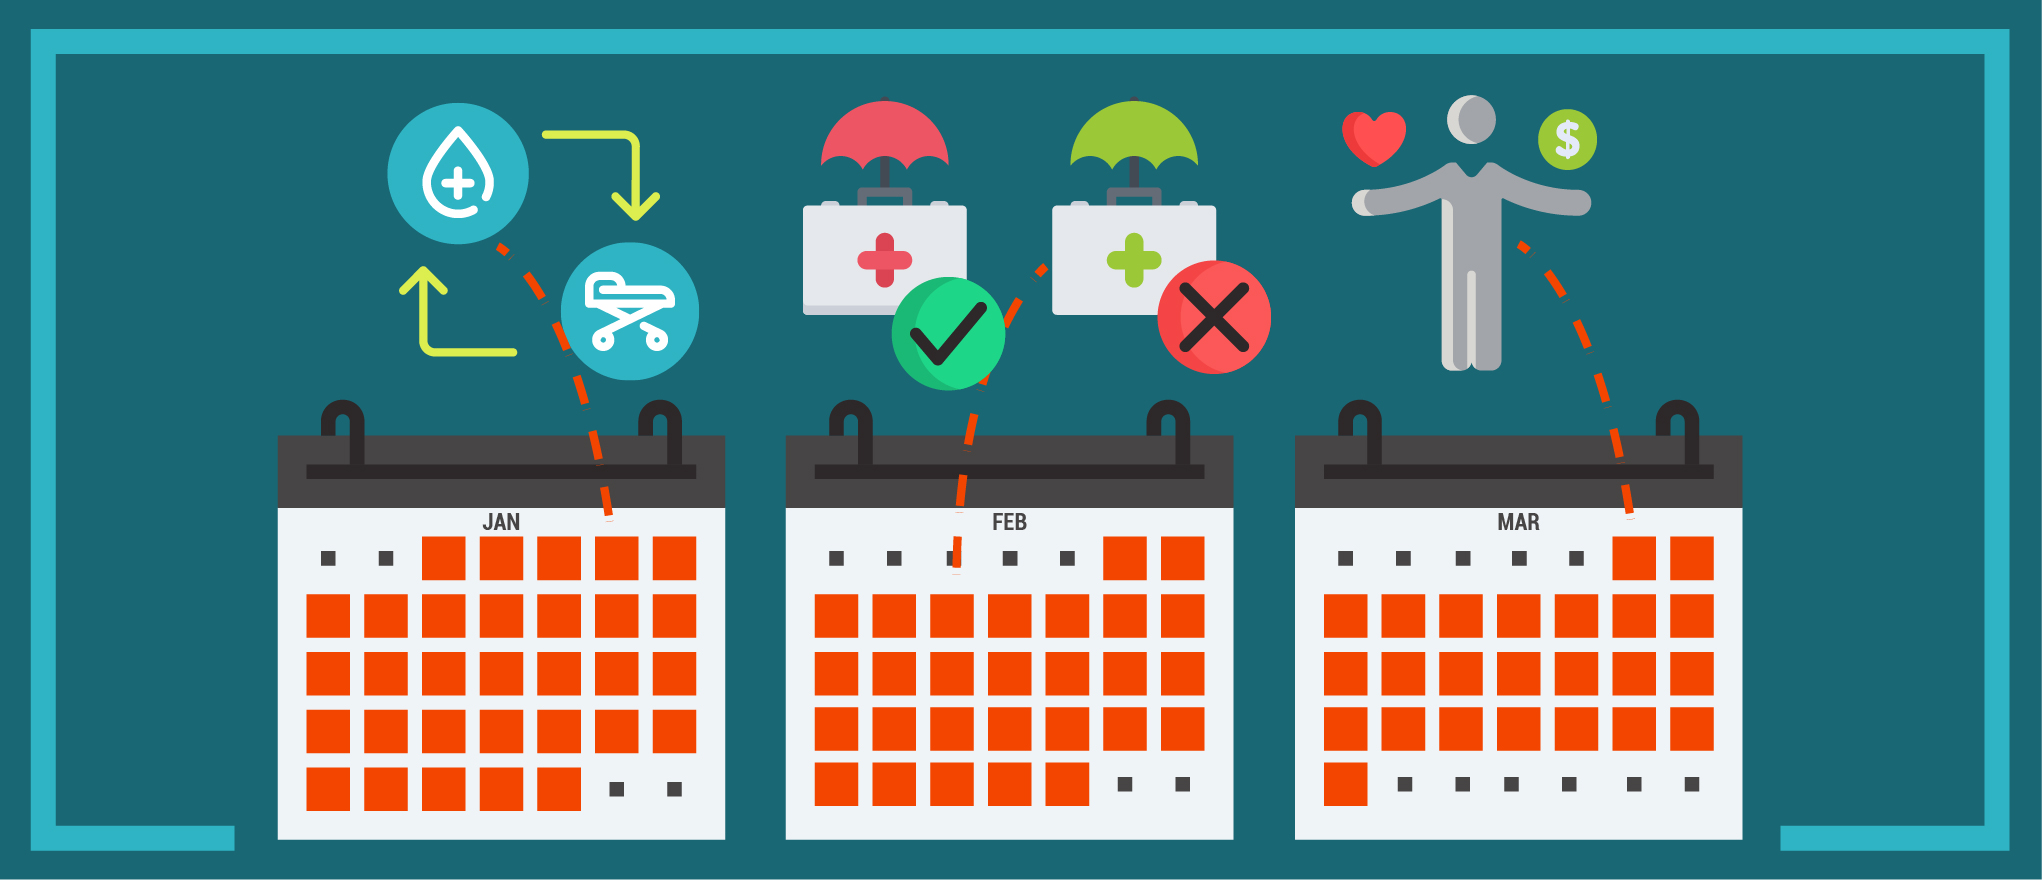 Making the Most of Medicare's Open Enrollment Period (OEP)